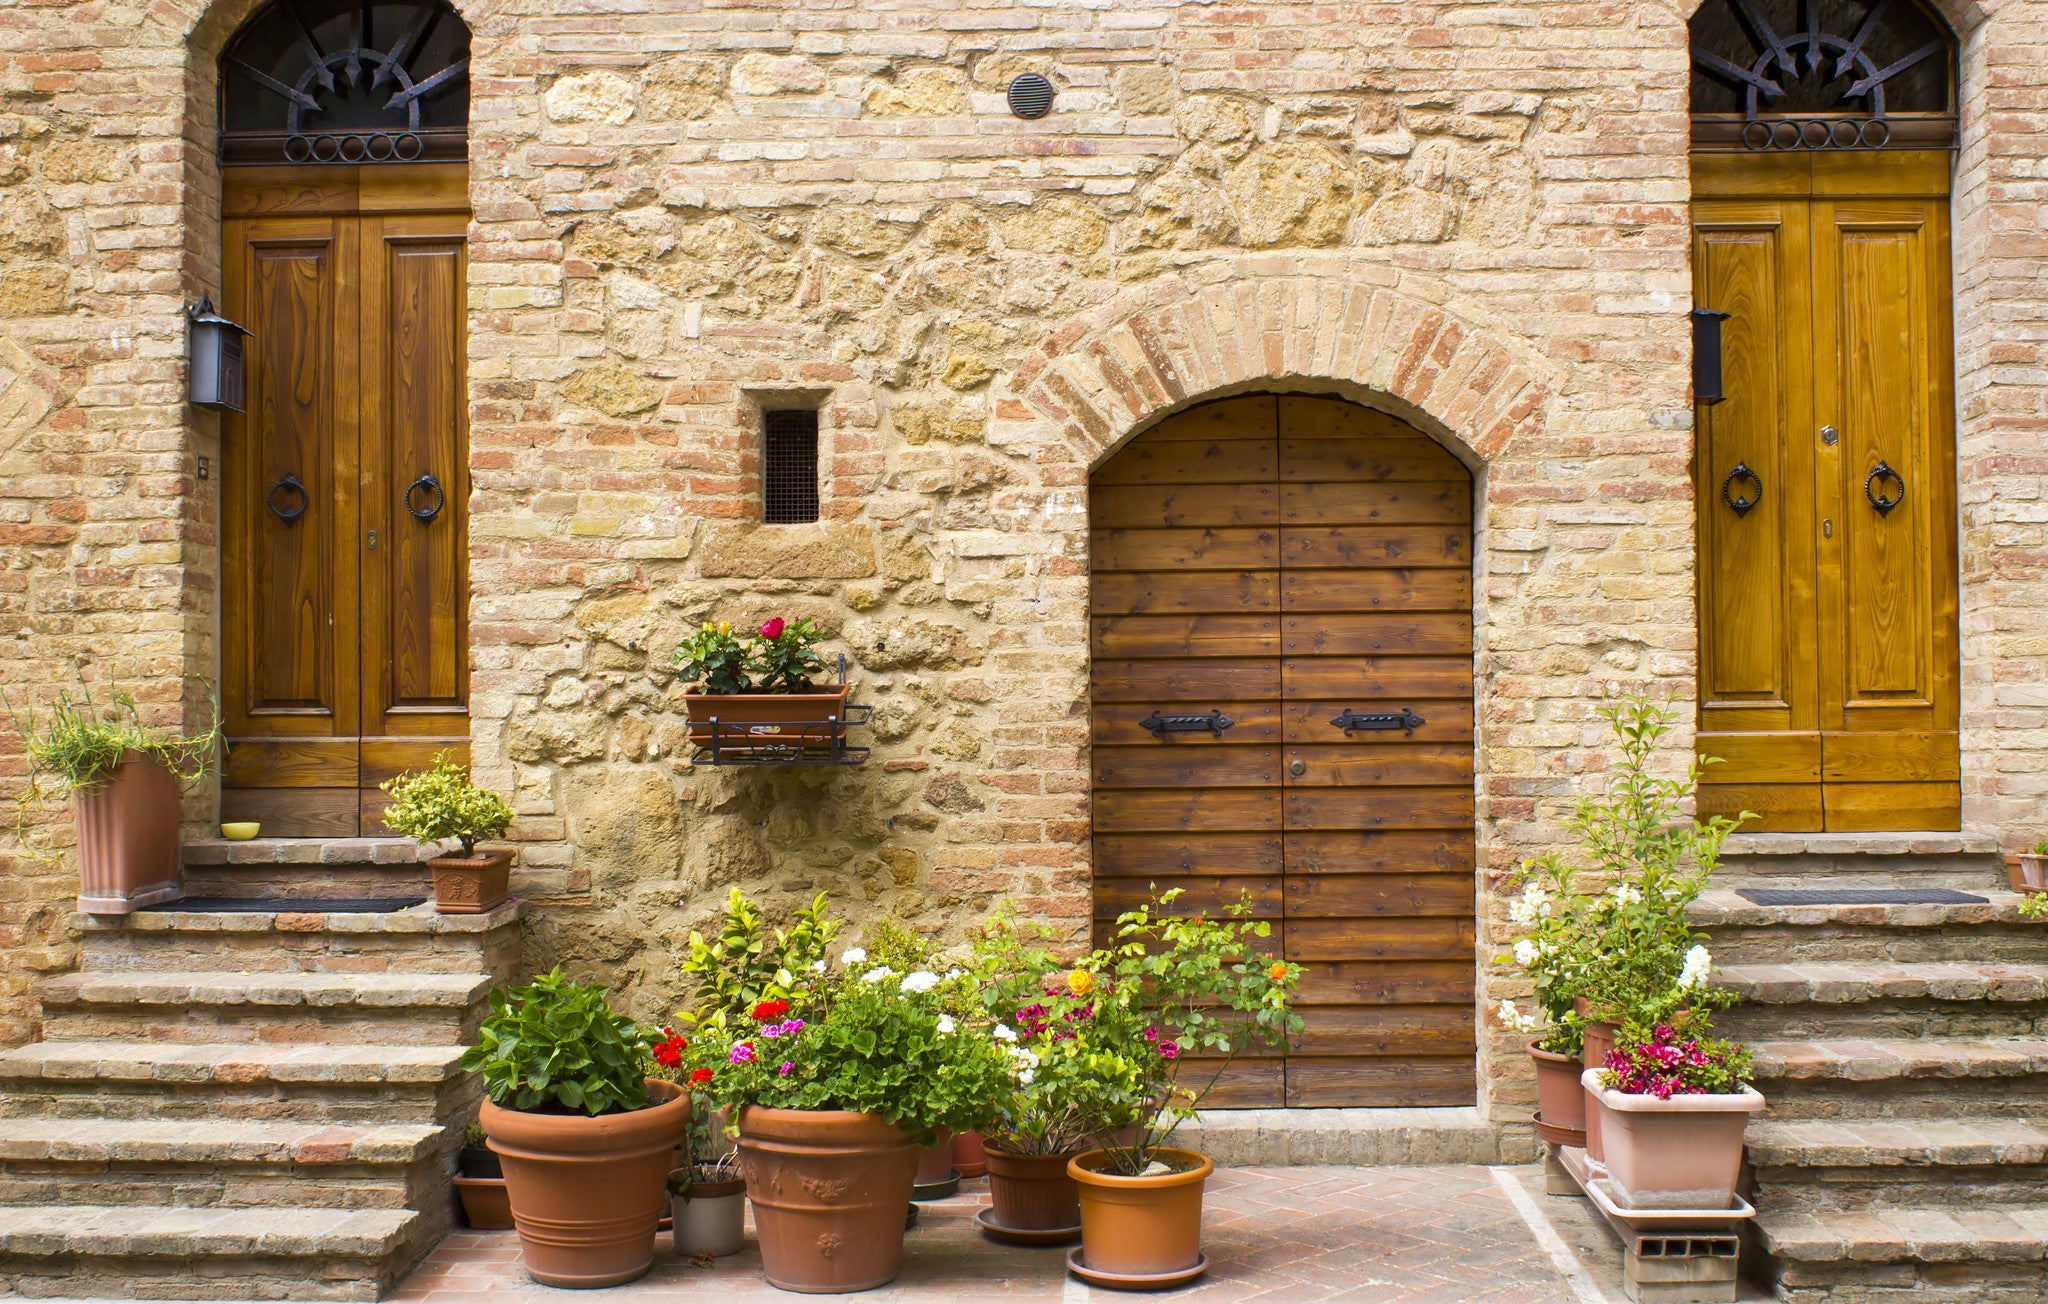 Sights from a Tuscan Street